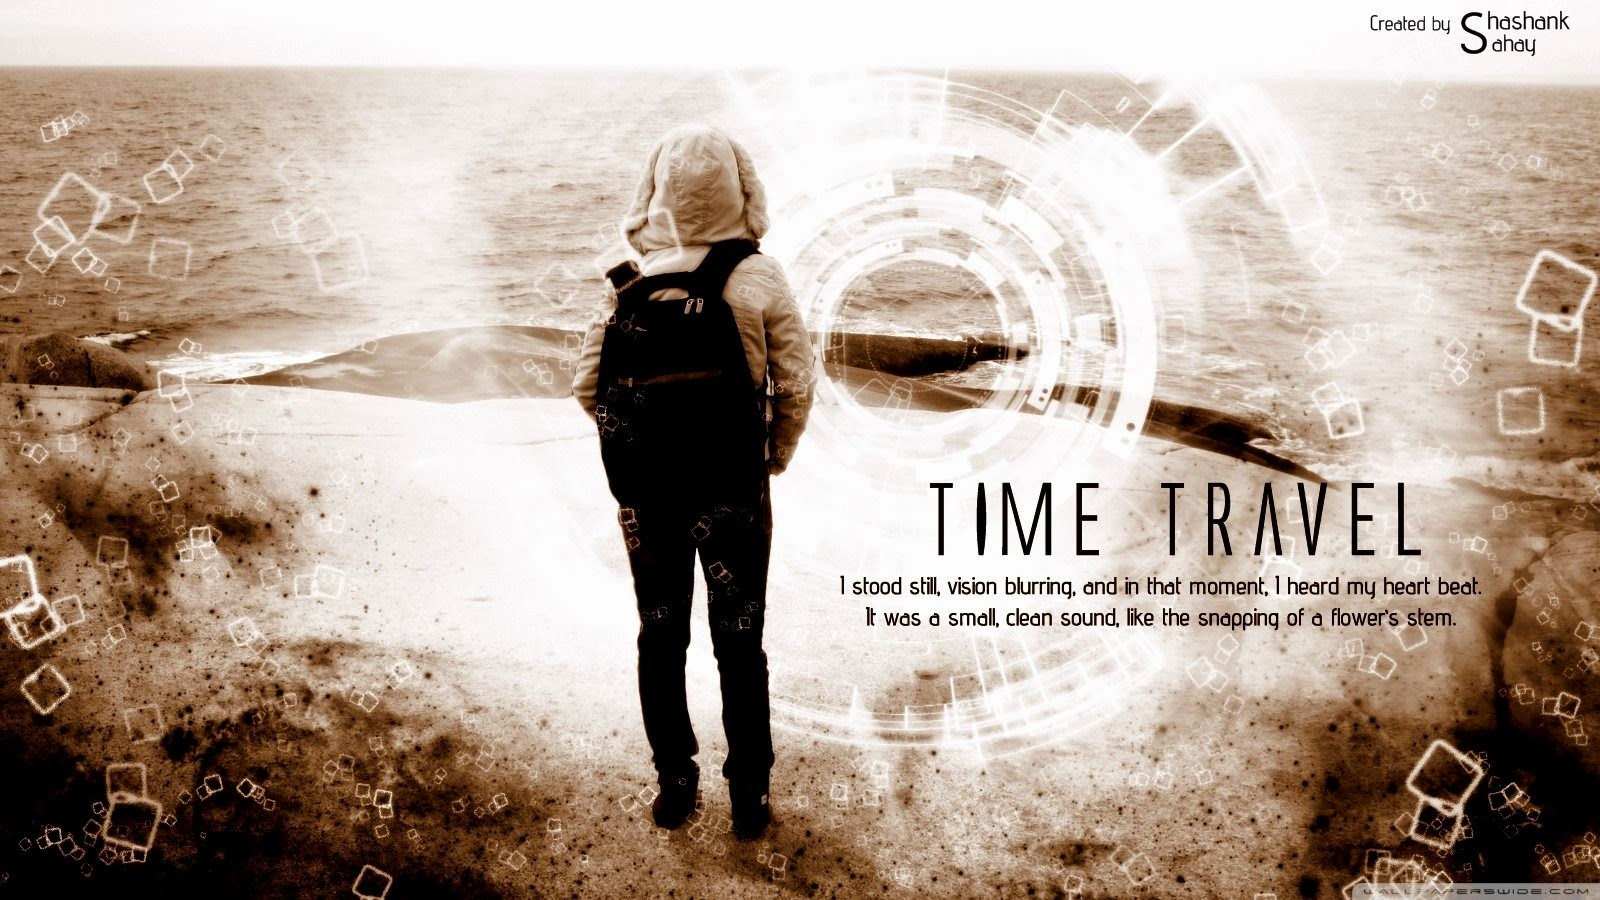 Could Time Travel Be Possible